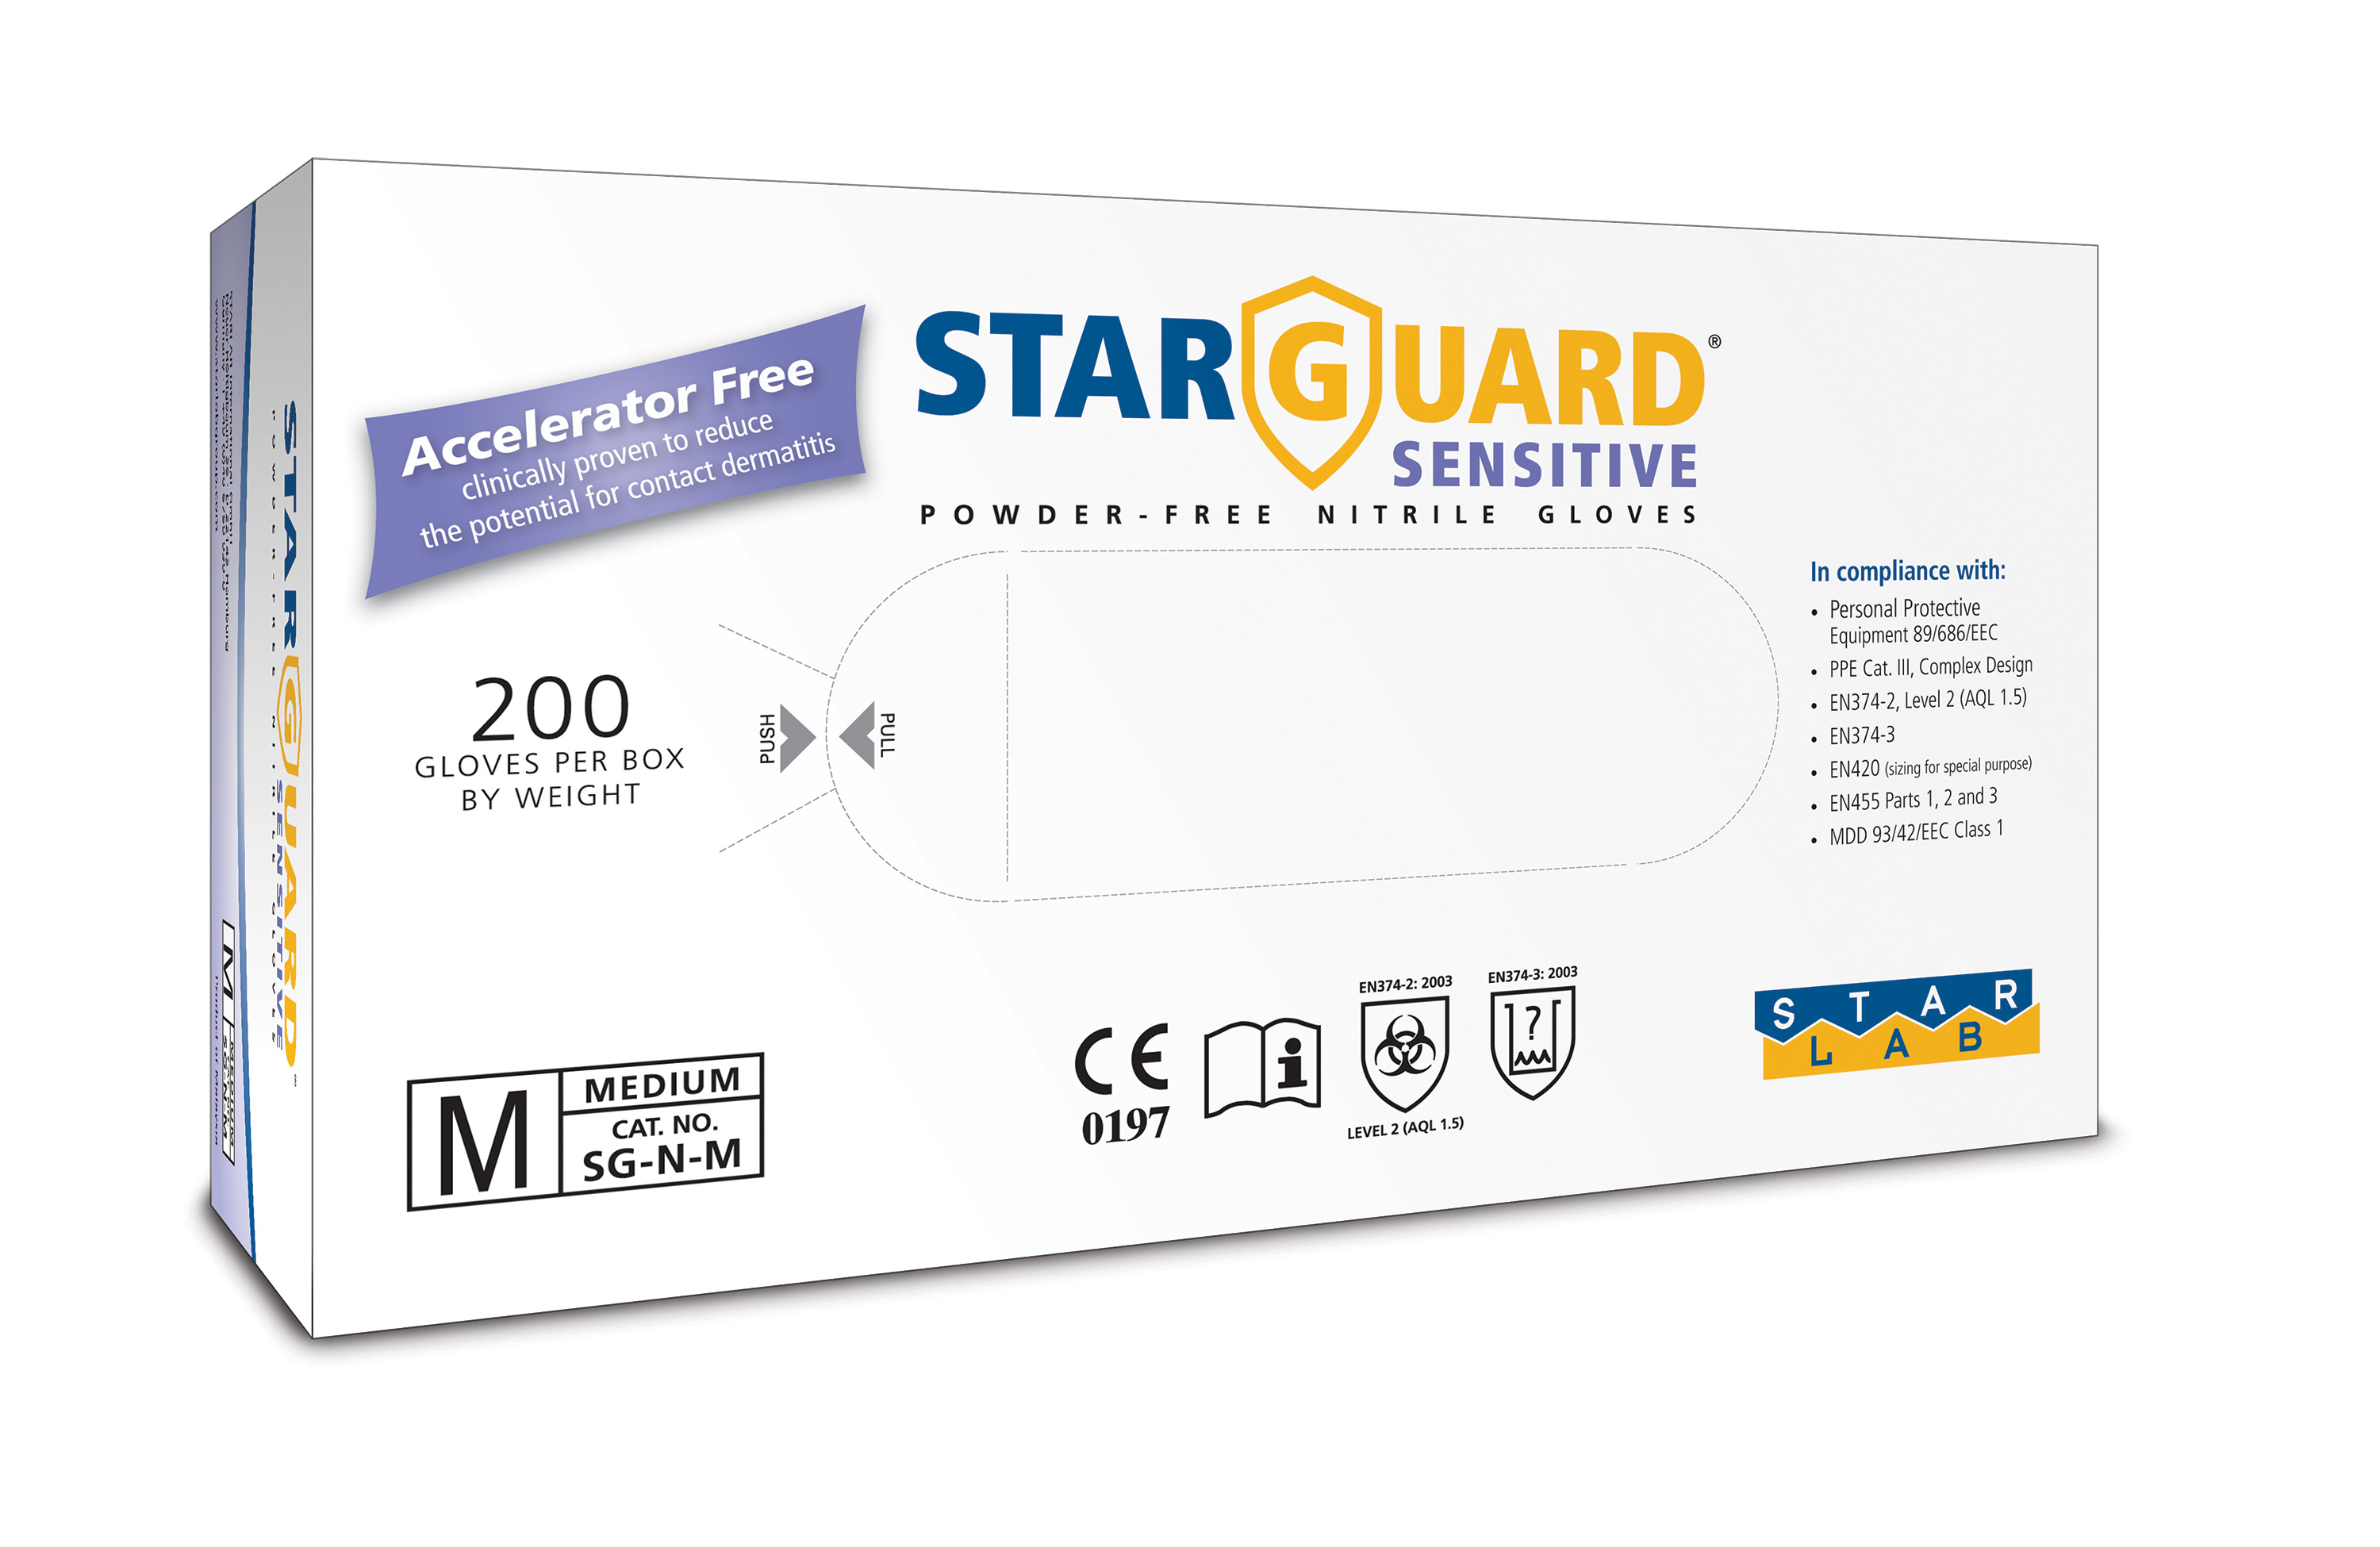 StarGuard SENSITIVE Nitrile Gloves, Powder Free, Blue, Size XL, Pk/ 10 x 200 gloves - just sFr. 7,85/100 gloves